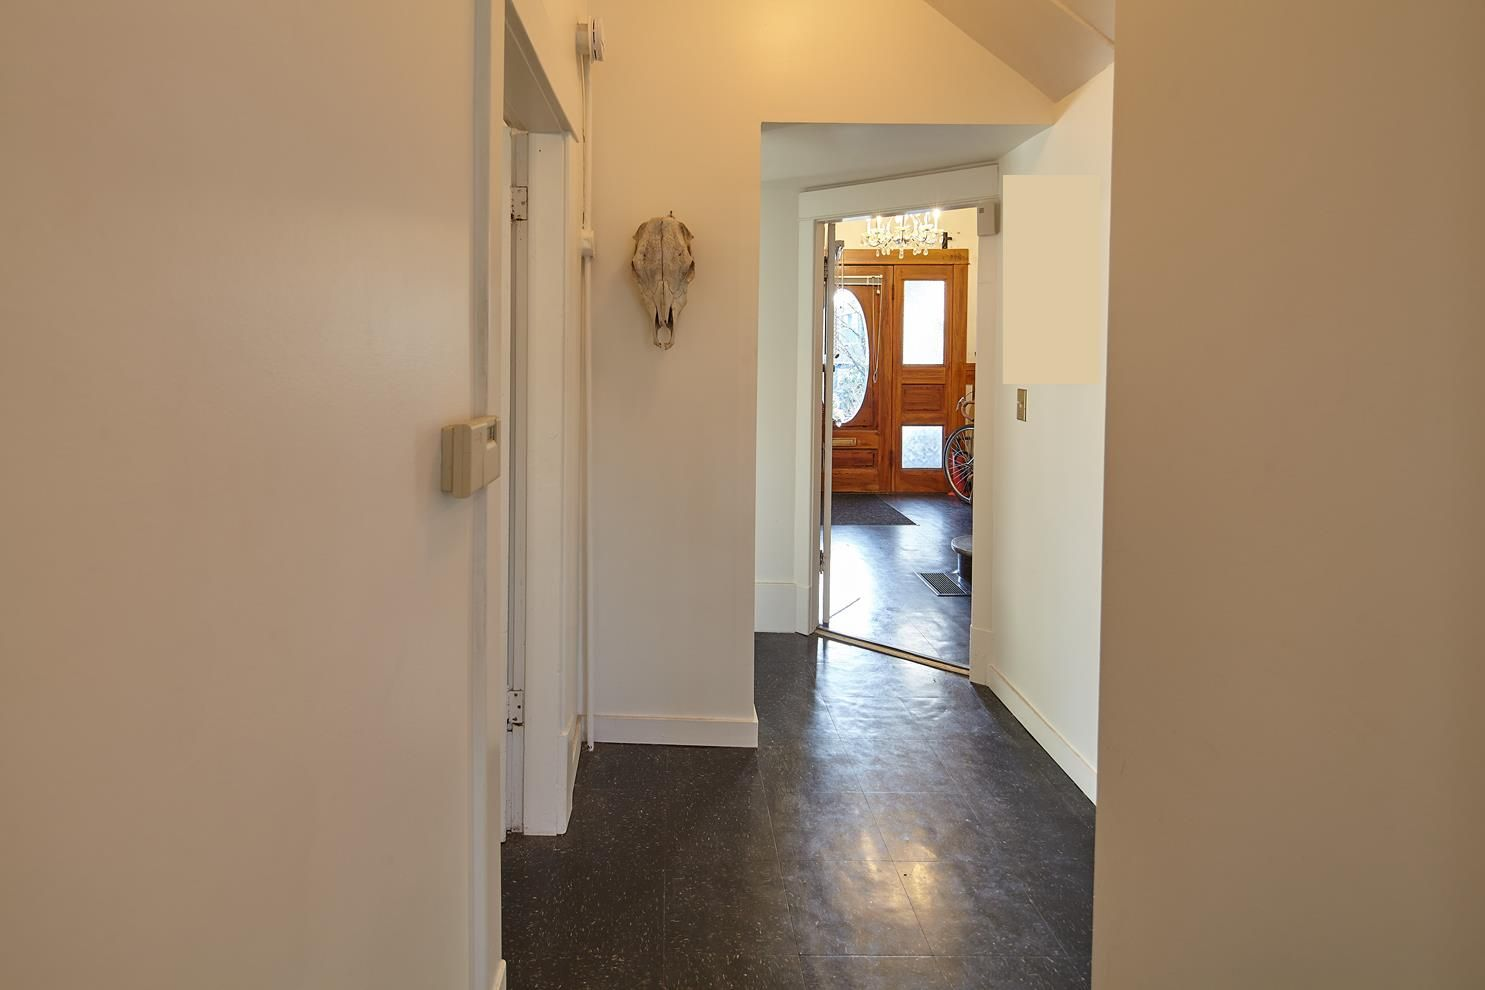 Photo 16: Photos: 1943 NAPIER Street in Vancouver: Grandview Woodland House for sale (Vancouver East)  : MLS®# R2423548